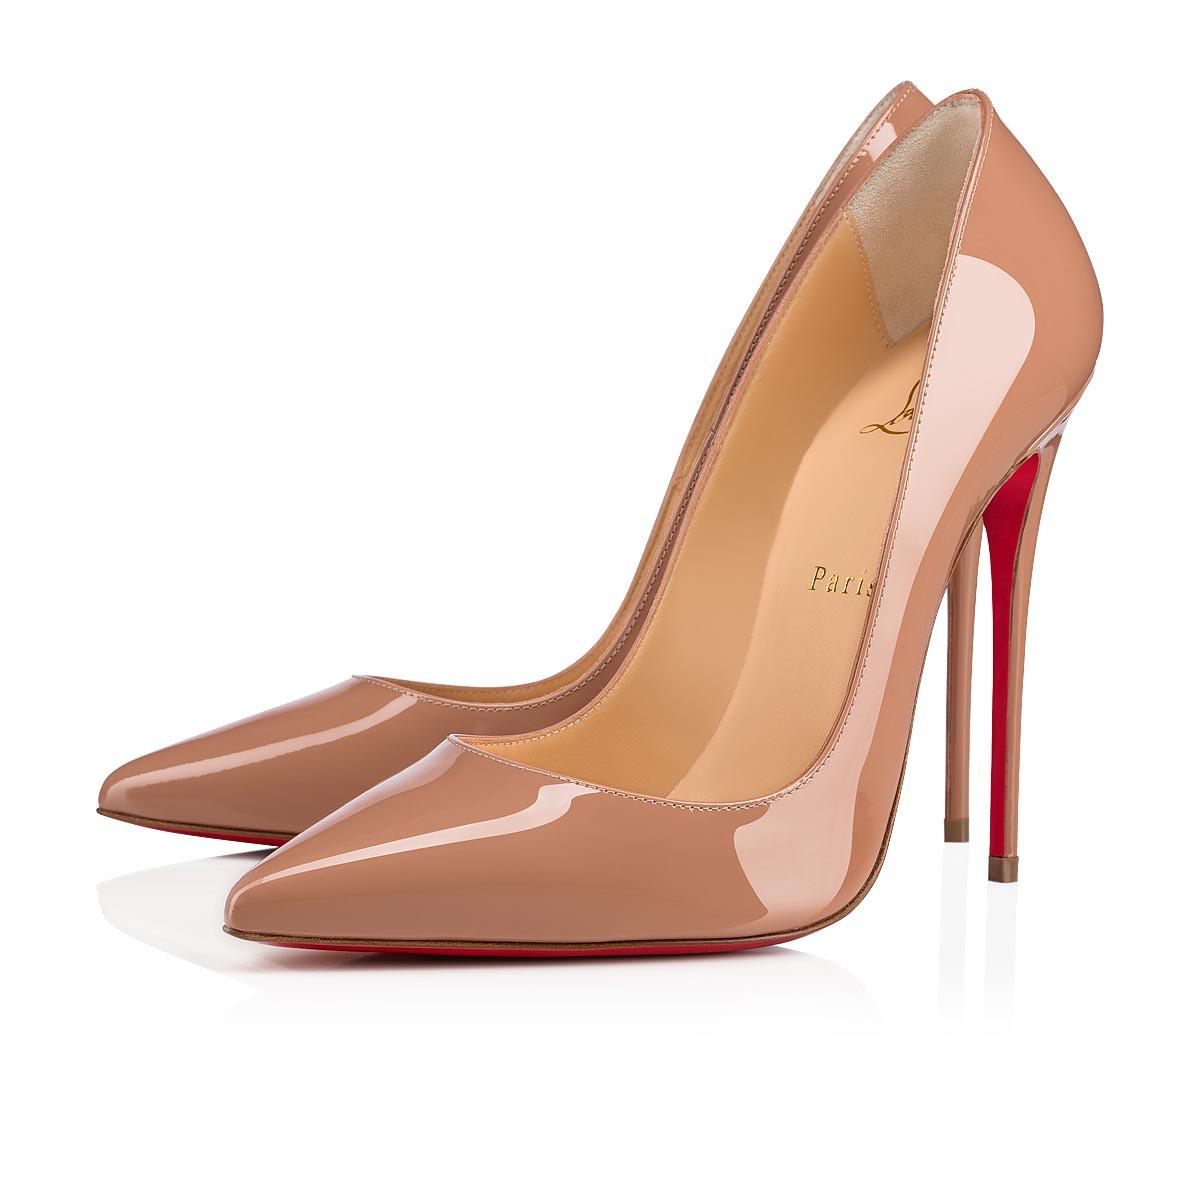 christian louboutin paris email address